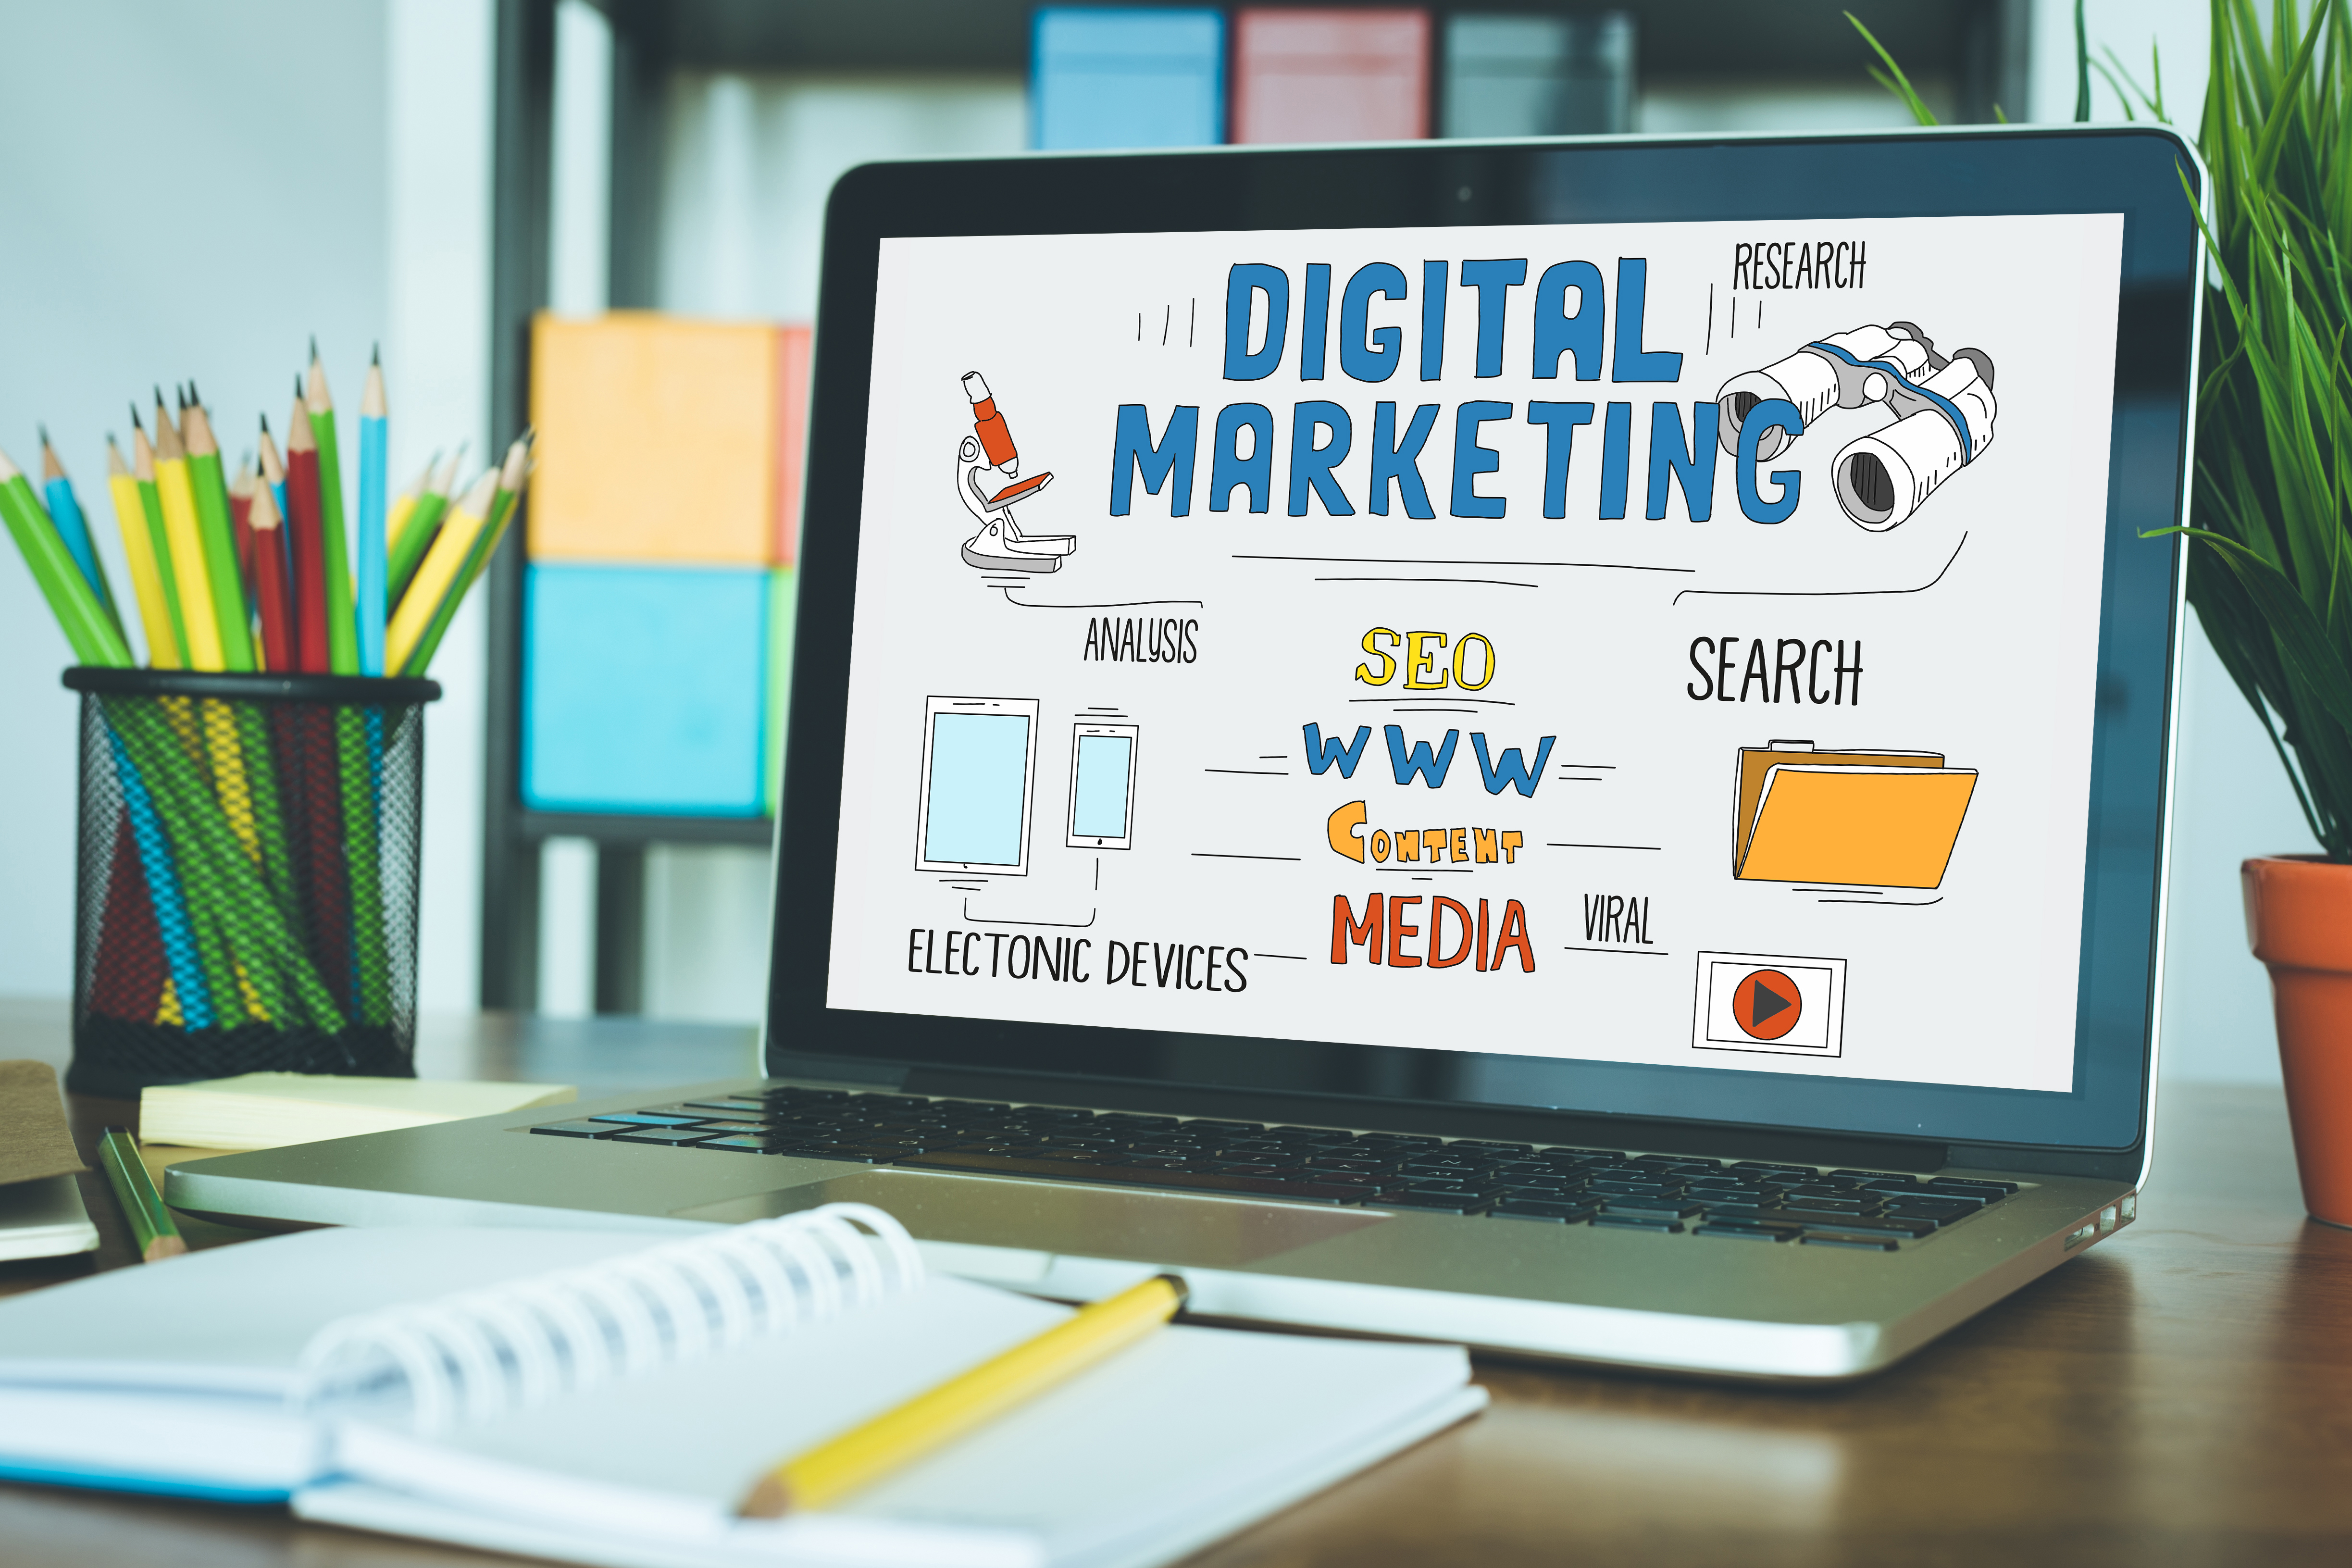 How to Find the Best Digital Marketing Package for Your Small Business